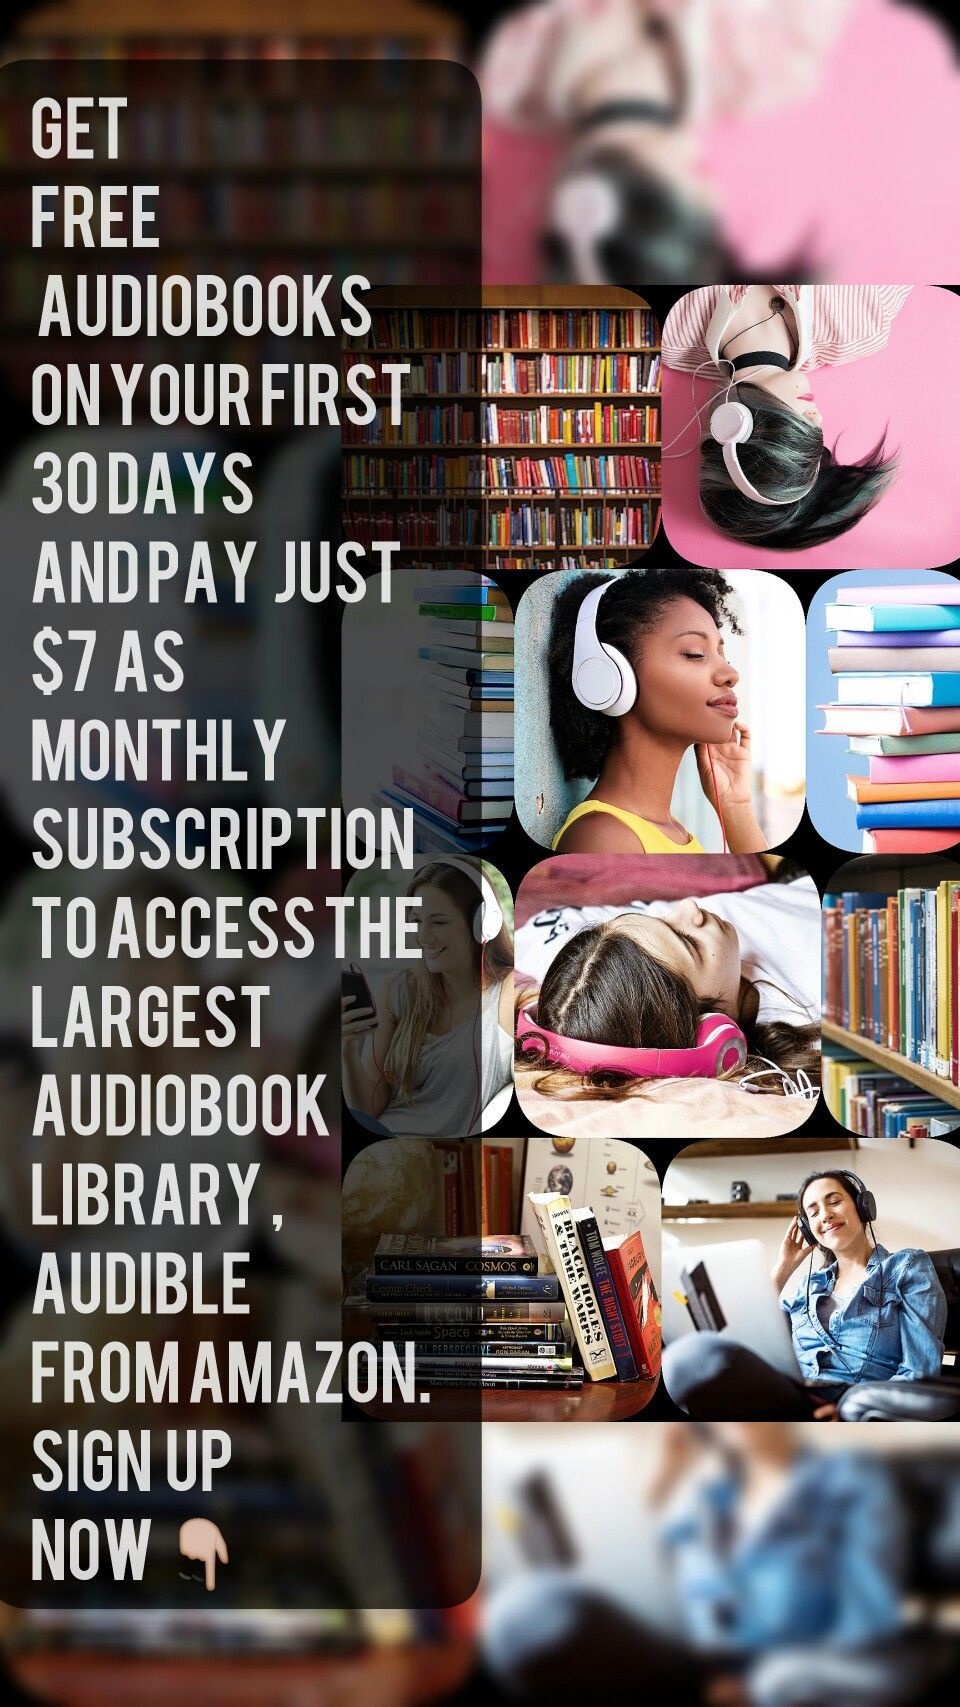 Get Free Audiobooks From Audible On Your First 30 Days Join Now And Cancel Membership Anytime Audiobooks Sunshine Books Best Audiobooks